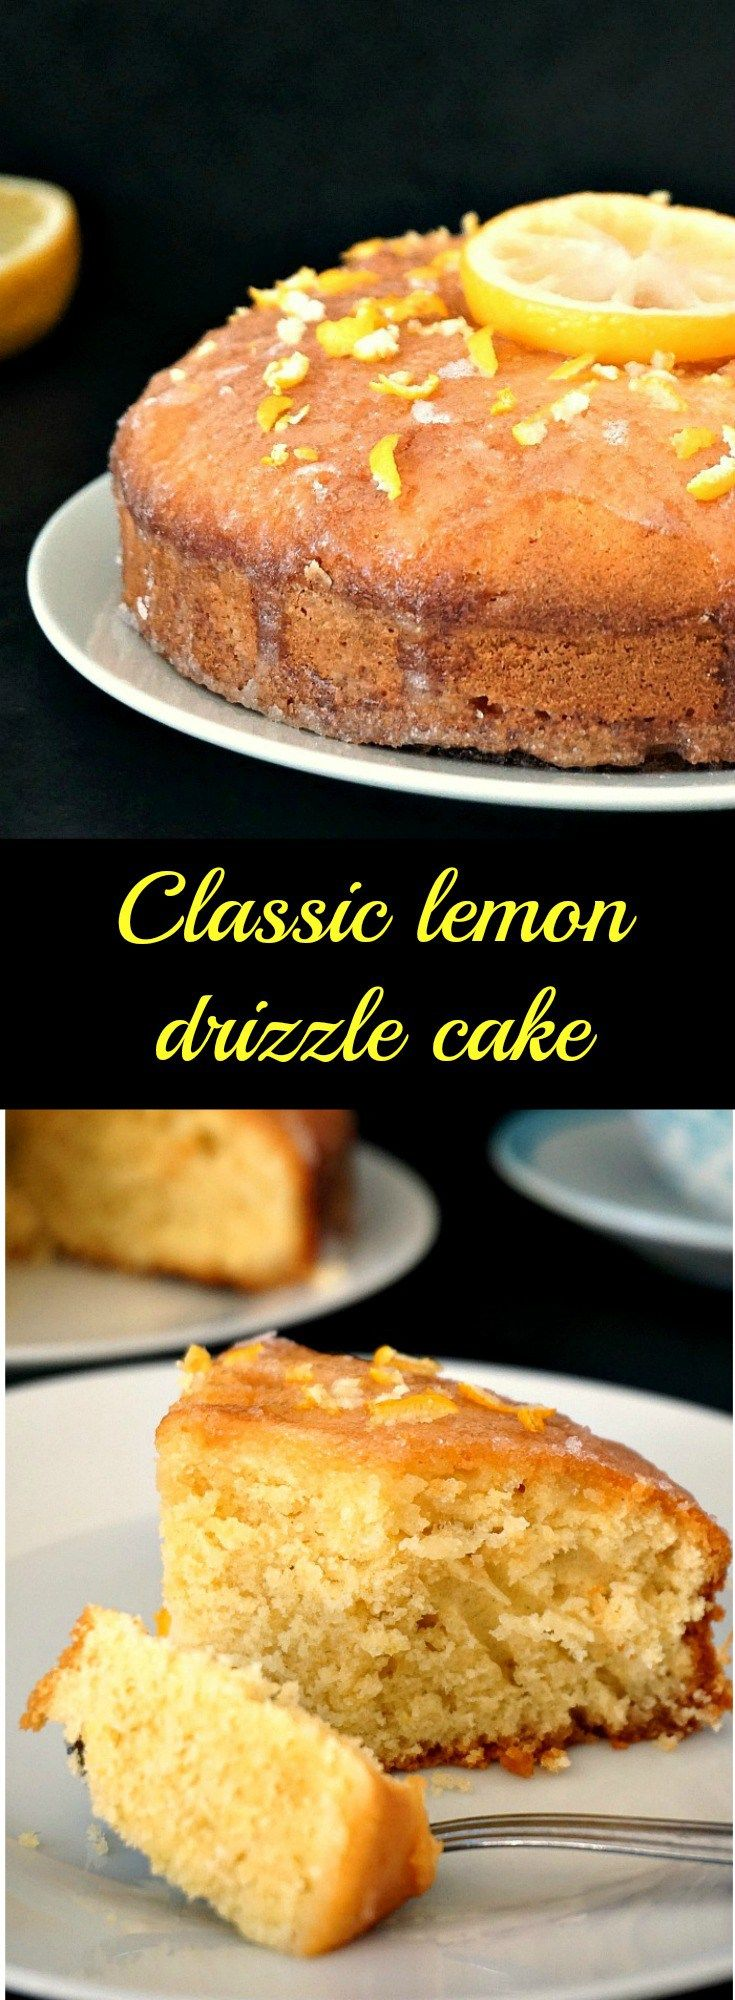 Classic lemon drizzle cake recipe